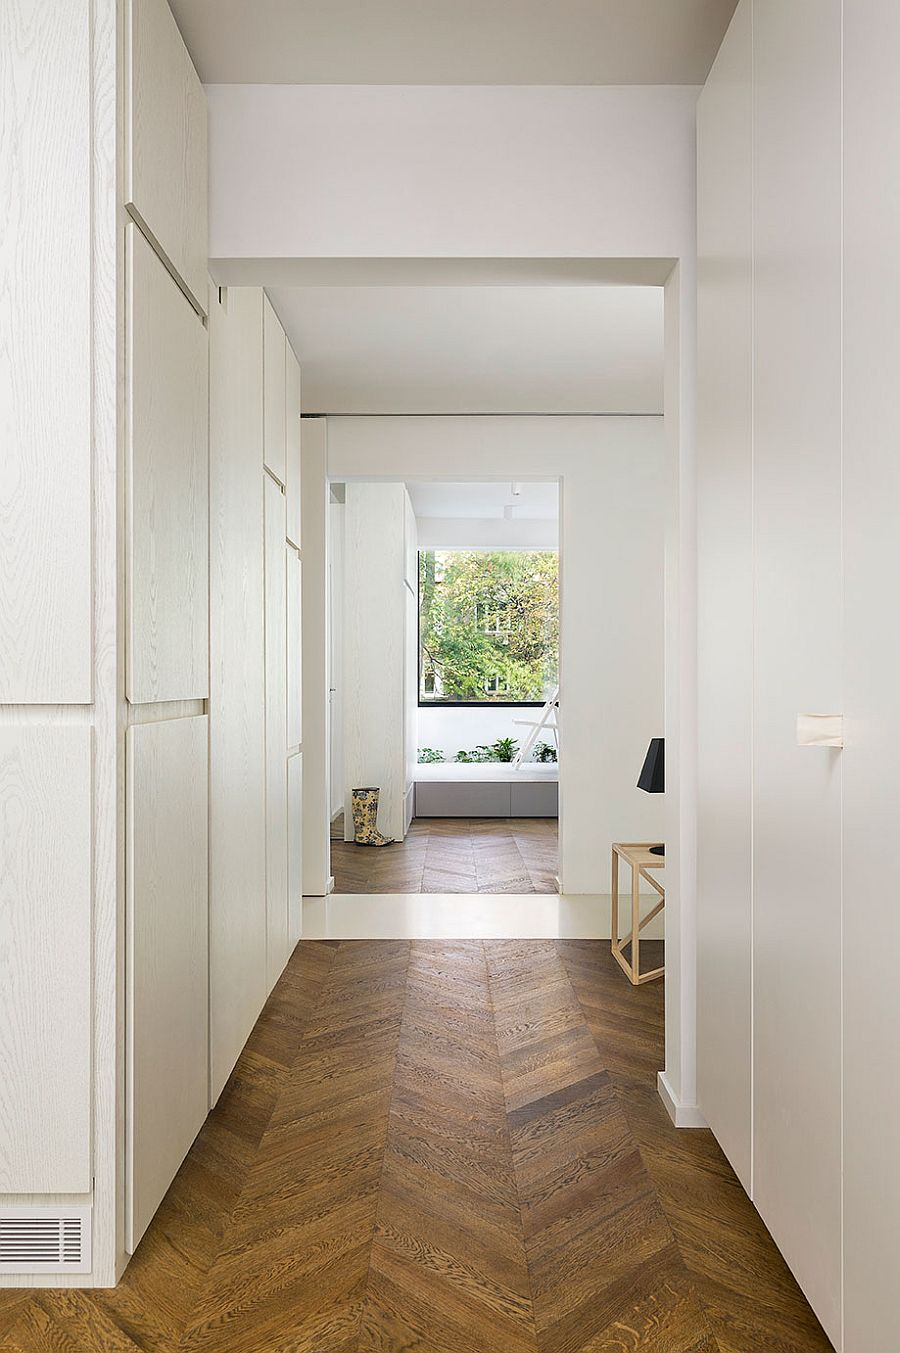 Minimal shelves and chevron patterm flooring for the smart apartment